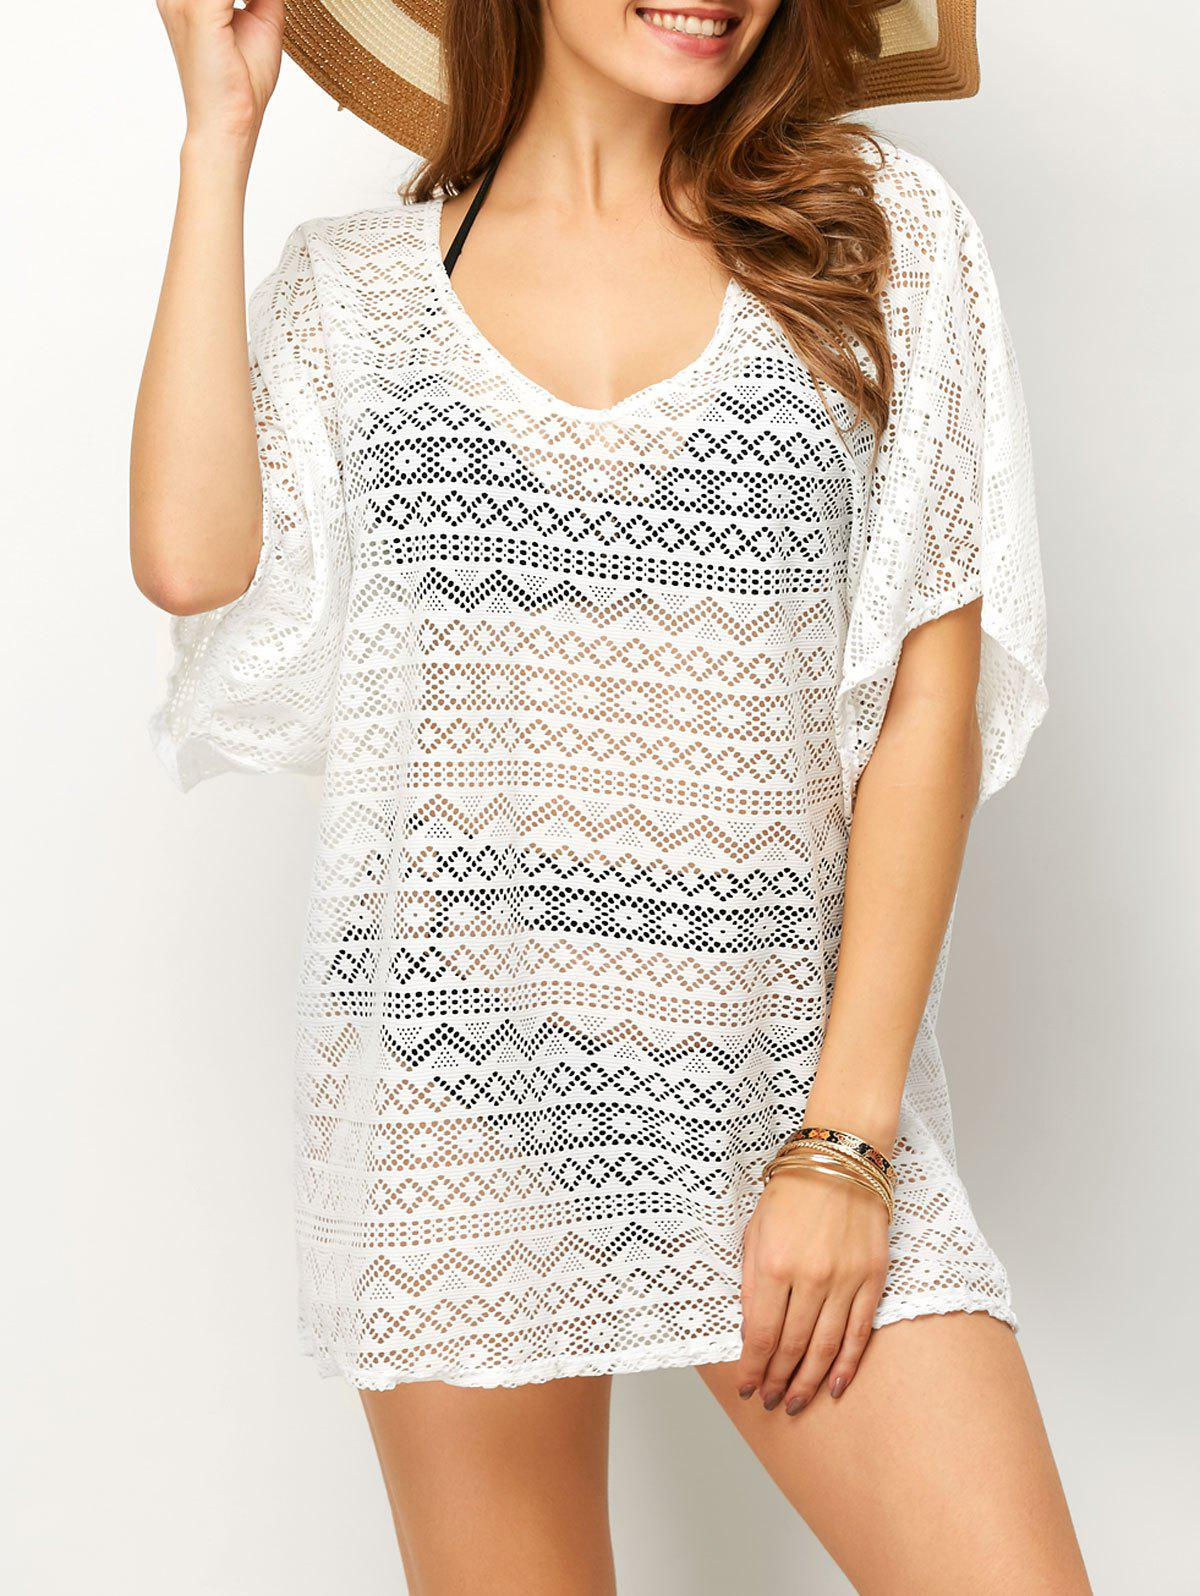 Affordable Backless Mesh Beach Tunic Cover Up